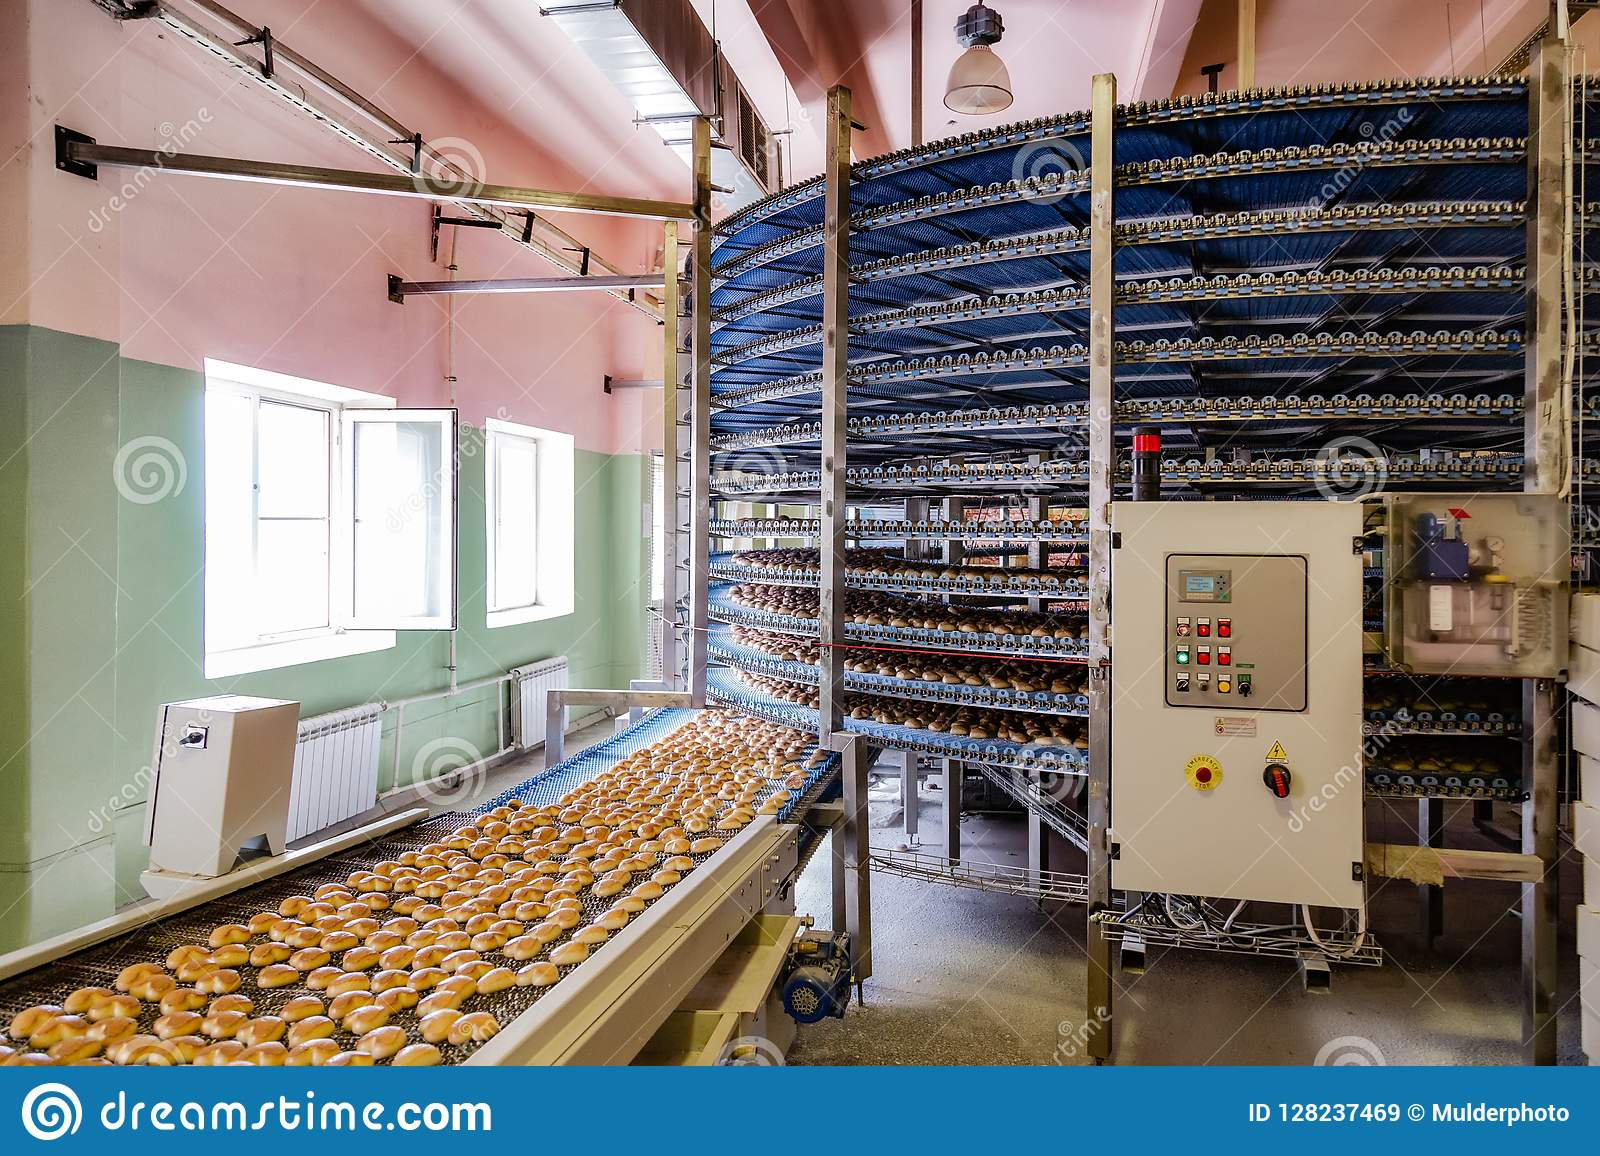 Automated round conveyor machine in bakery food factory, cookies and cakes production line